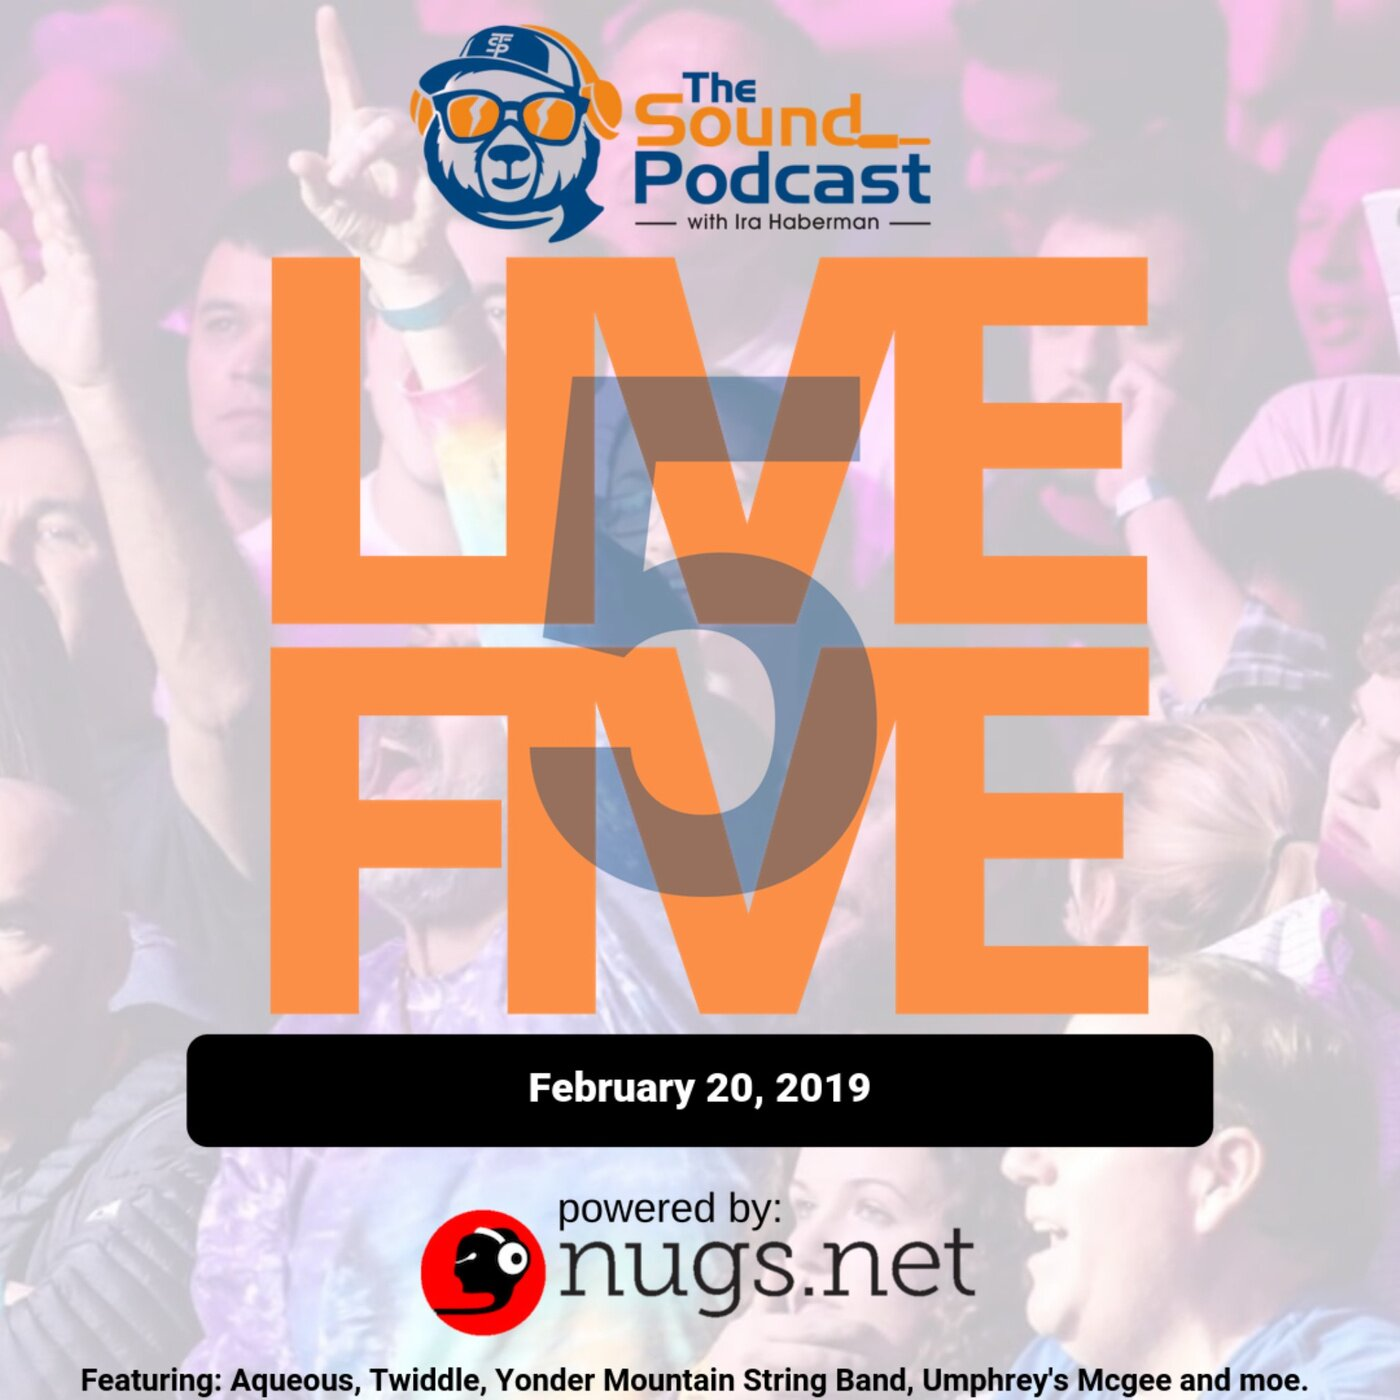 Episode: 8 - Live 5 - February 20, 2019.